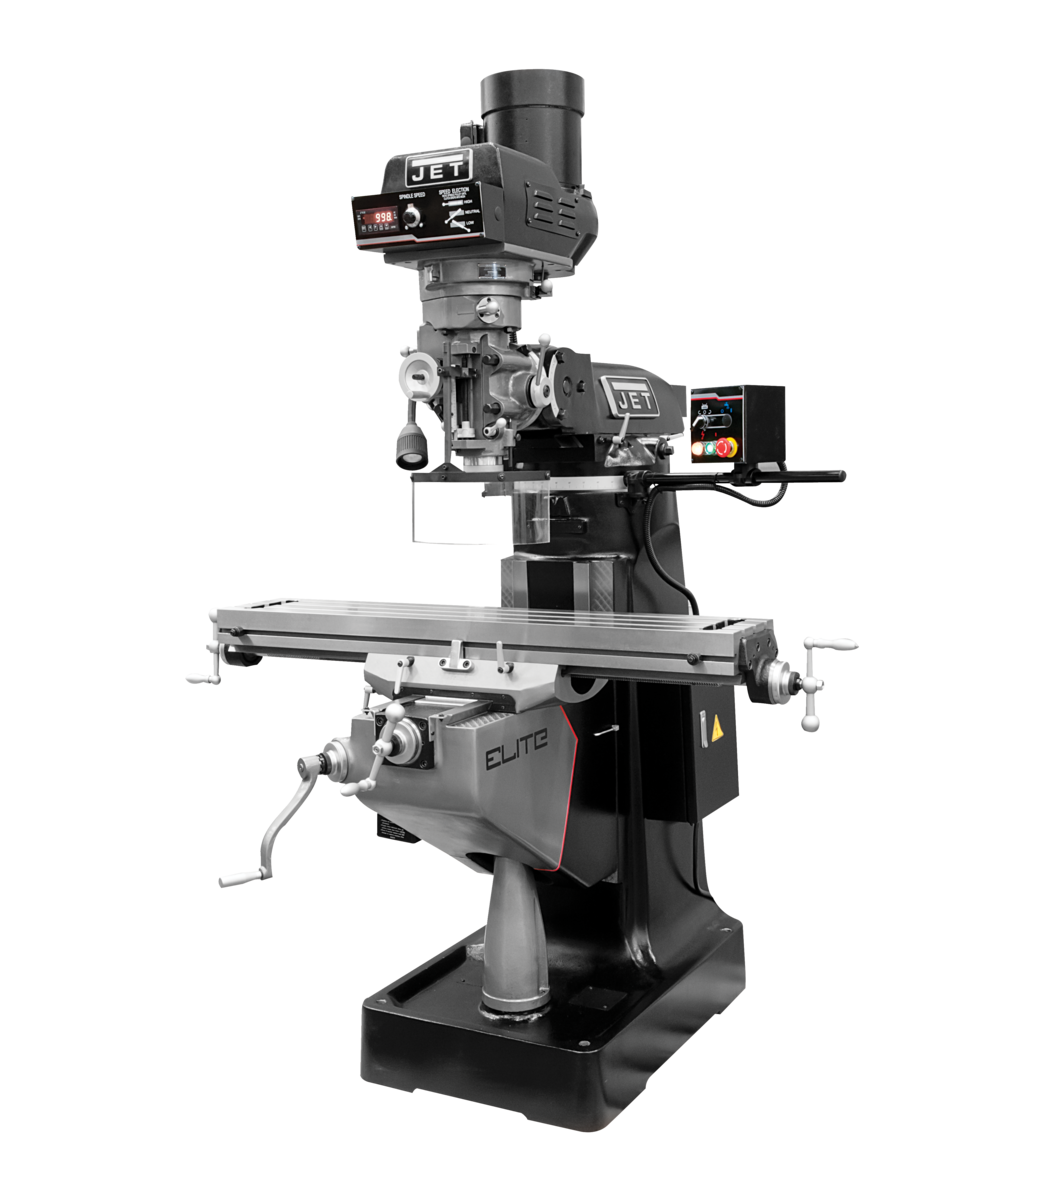 EVS-949 Mill with 3-Axis Newall DP700 (Knee) DRO and X, Y-Axis JET Powerfeeds